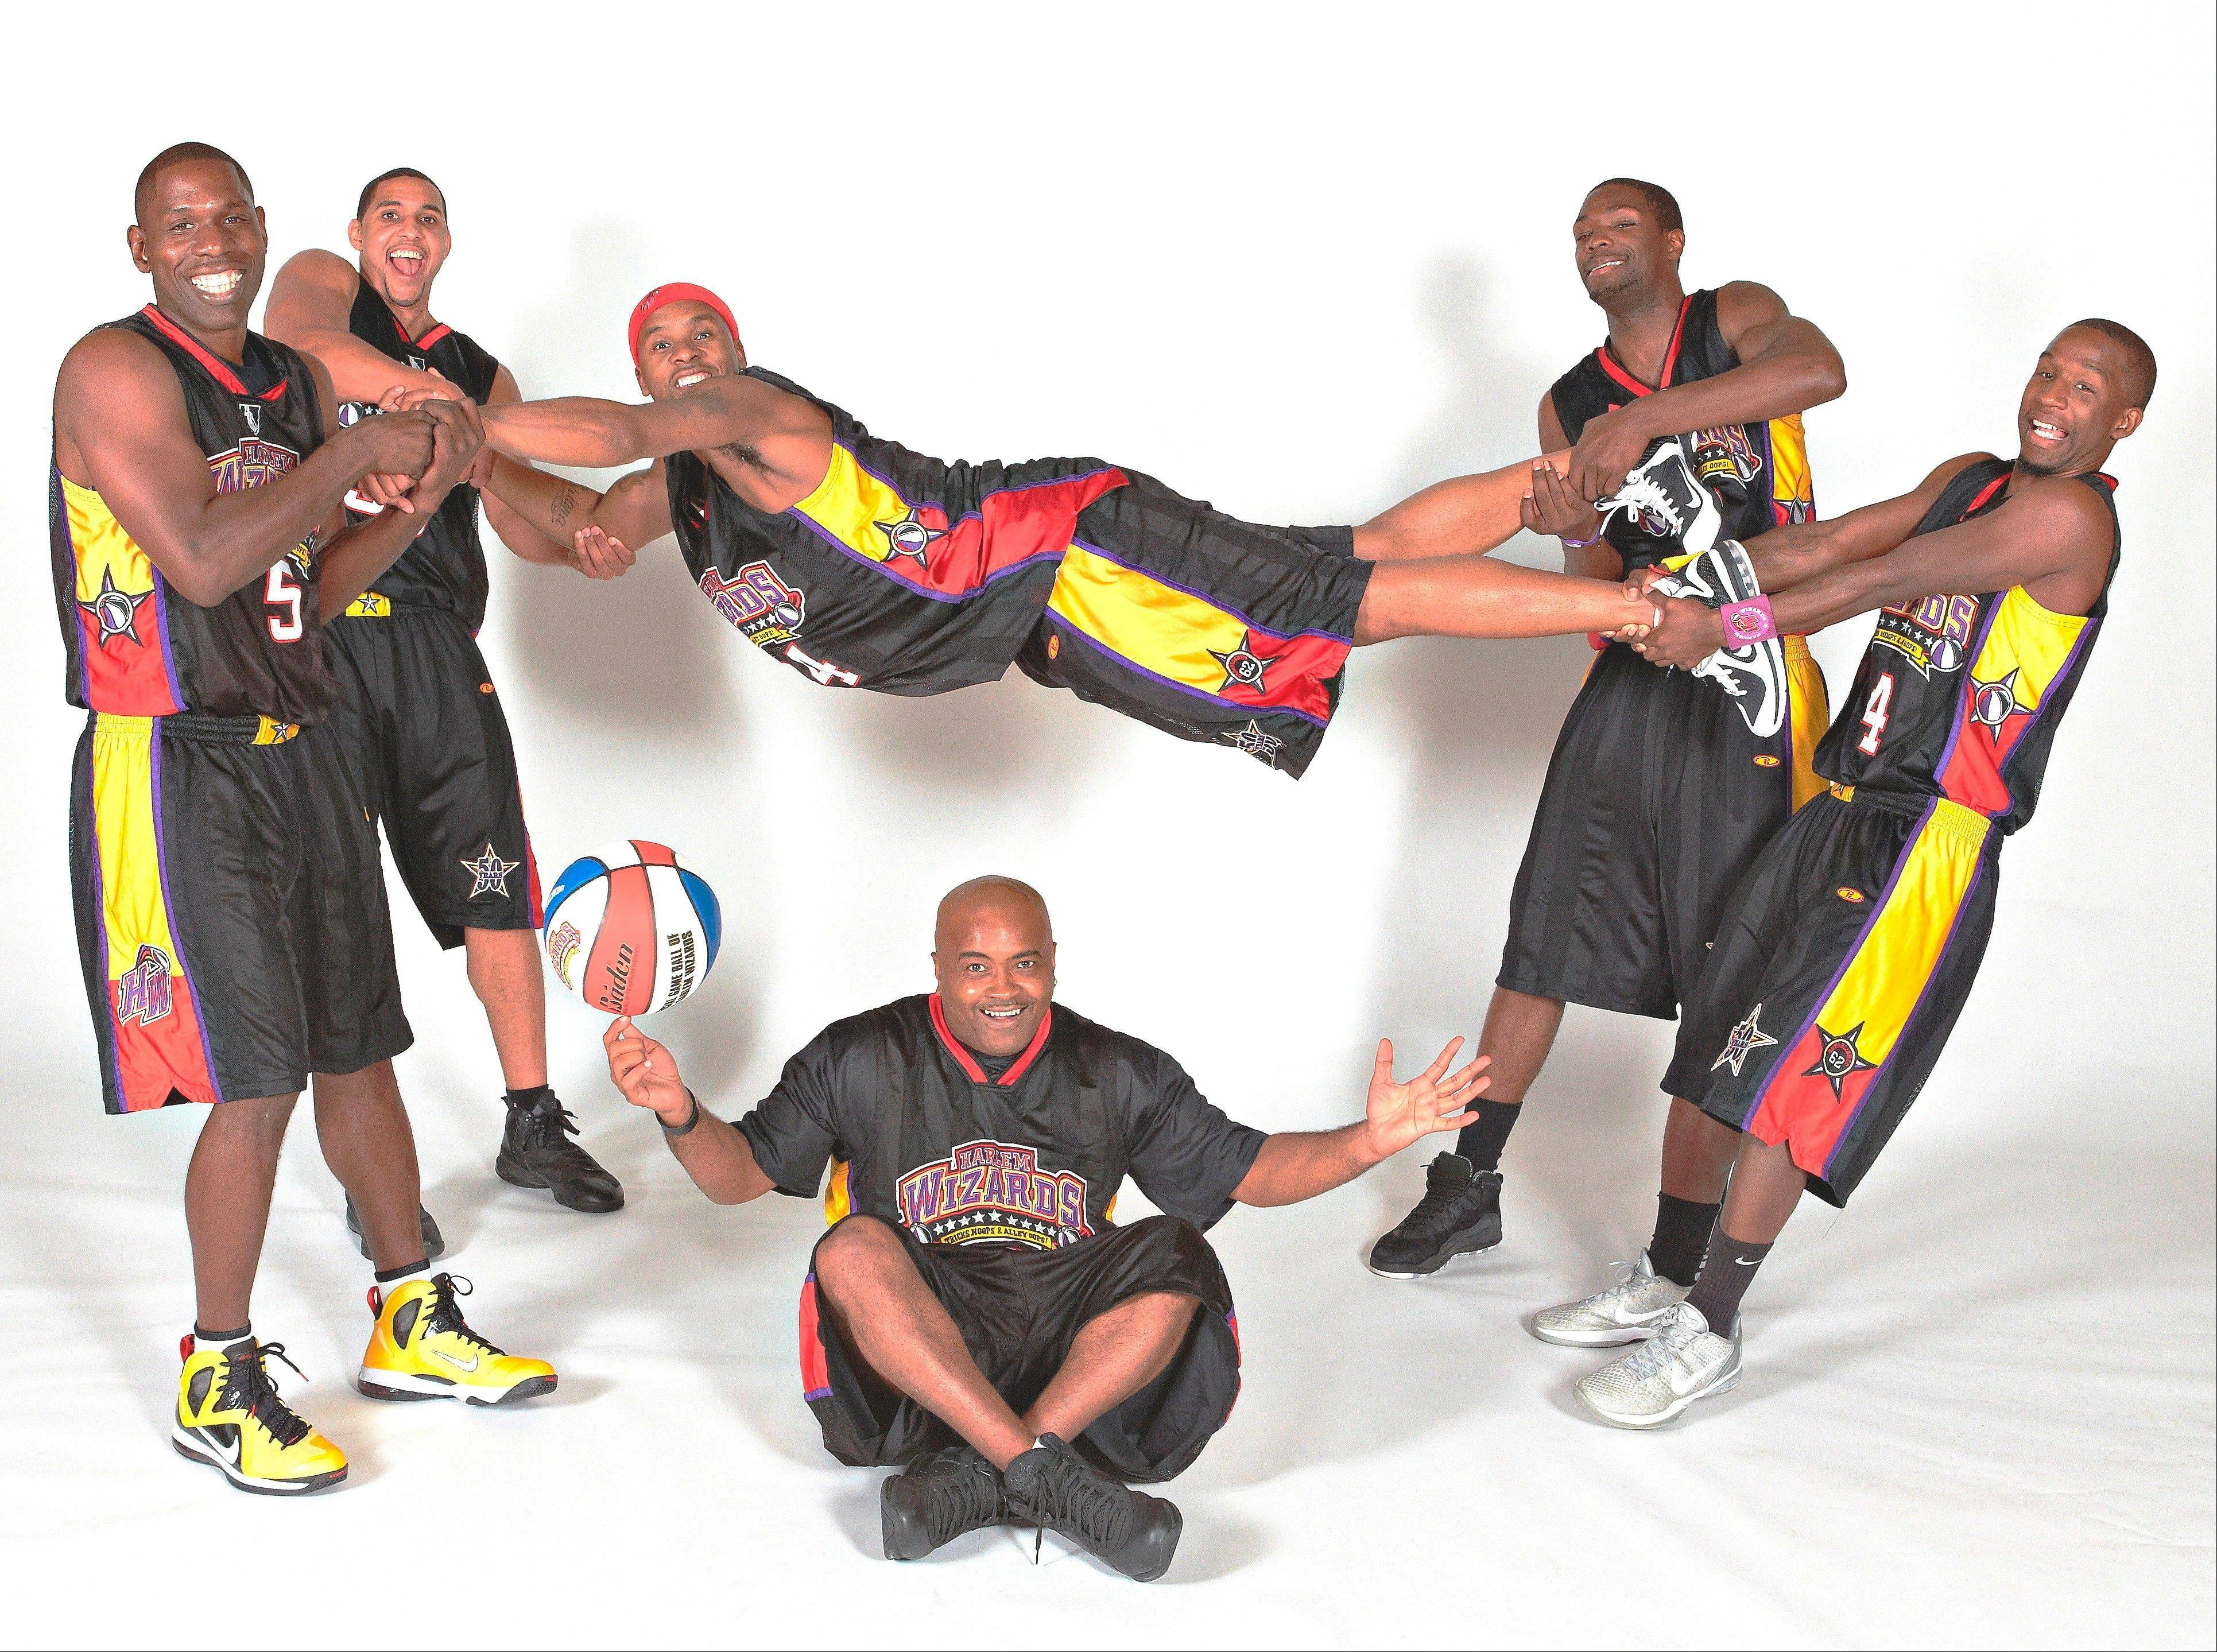 The popular Harlem Wizards will take on local school teachers, administrators and community members, including South Elgin police and firefighters, in a game featuring their slams, world-class tricks, precision teamwork and theatrical style humor on Friday, Feb. 15.